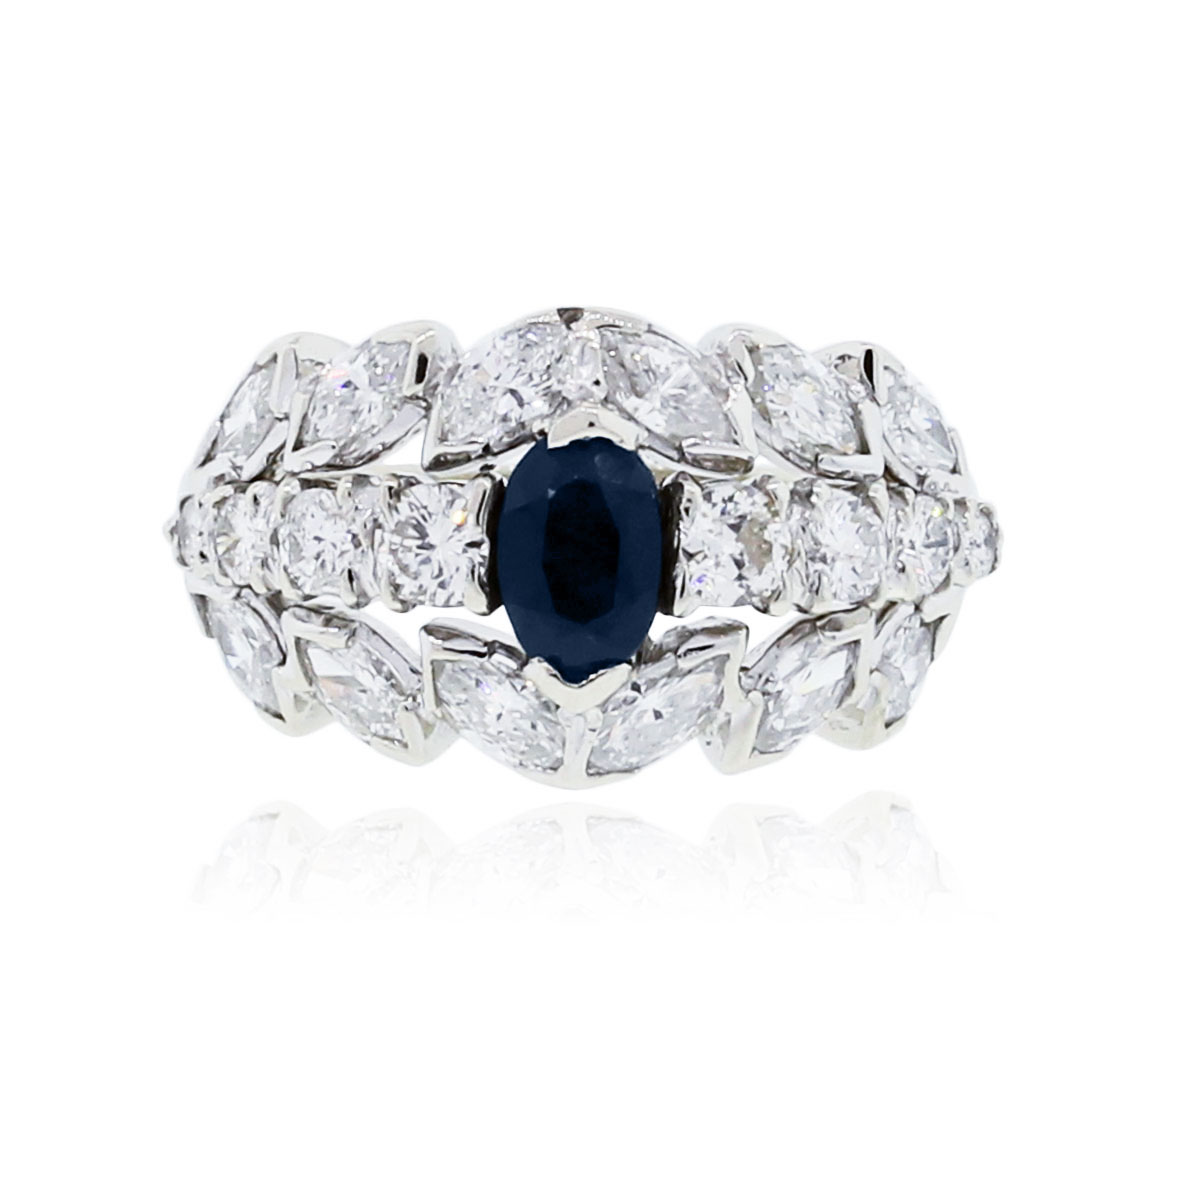 14k white gold 1 50ctw oval sapphire ring